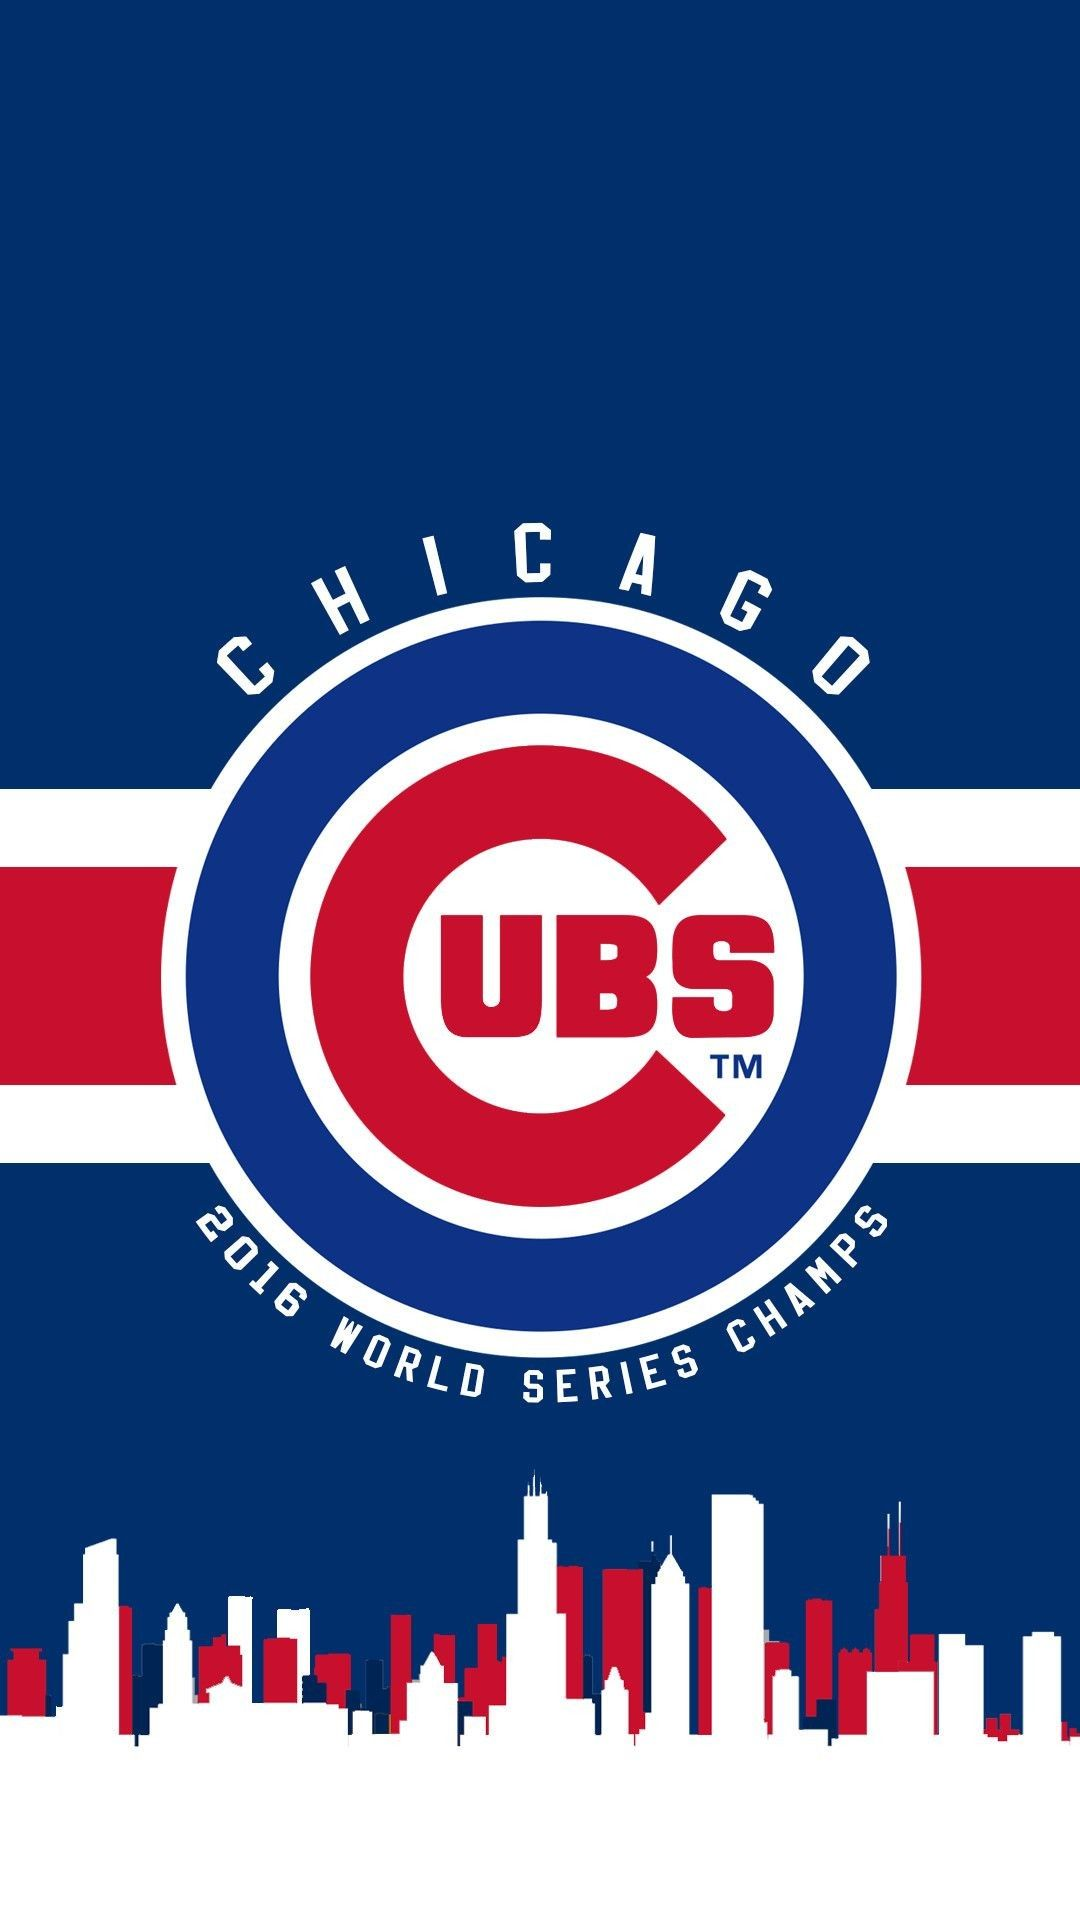 Cubs Iphone Wallpaper : iphone, wallpaper, World, Series, Picture, Chicago, Wallpaper,